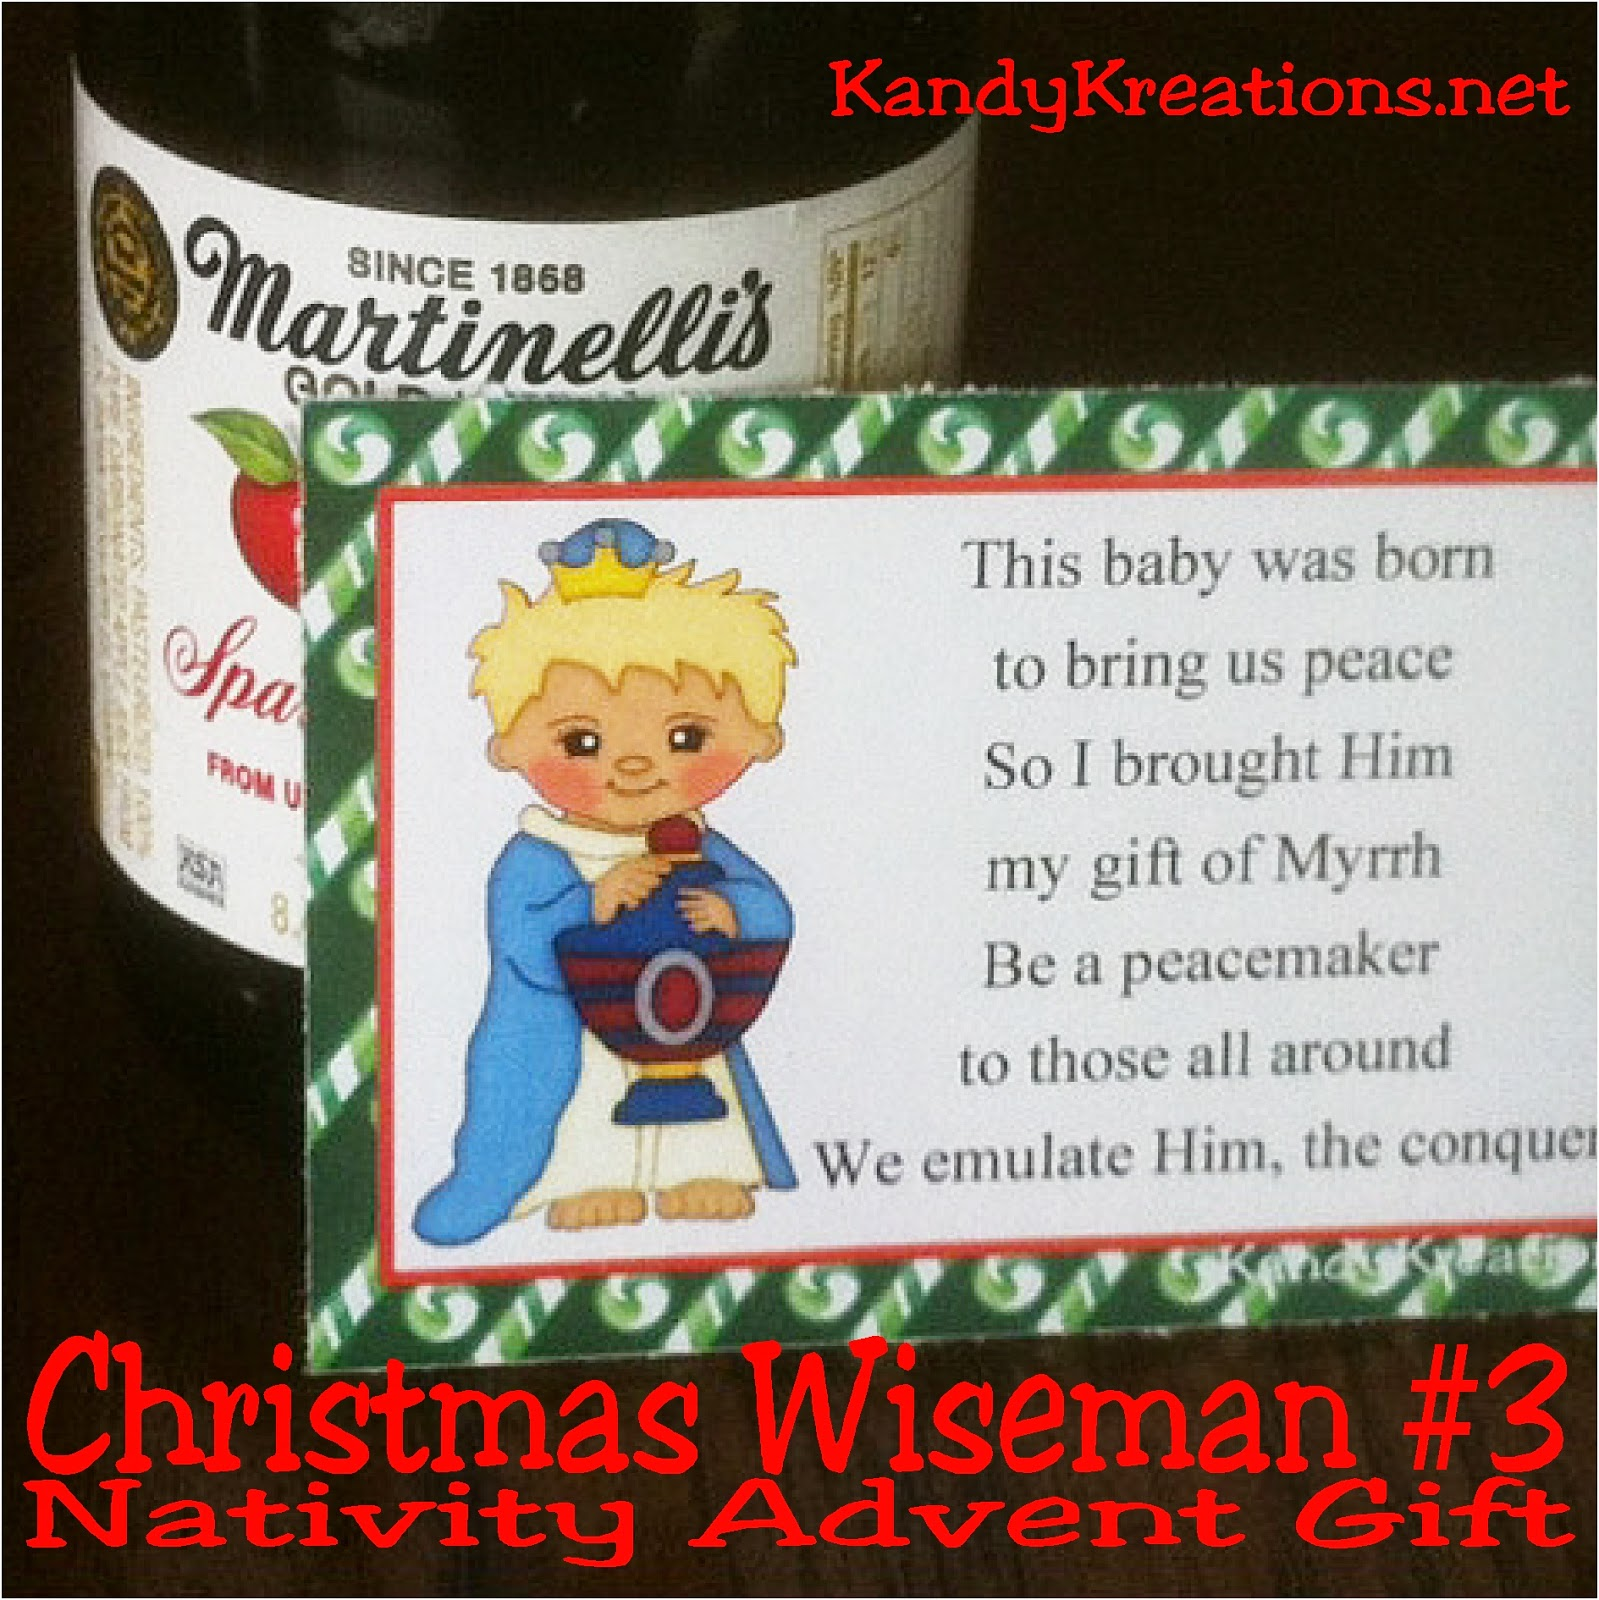 This Nativity Advent Calendar is a wonderful neighbor gift idea this Christmas.  Each day, wrap up the candy, add the poem and tag free printable, and give a gift that will bring Christ back into Christmas. Day 7 is the third wise man bringing his gift of Myrrh to the peacemaker and conquerer, Jesus Christ. #advent #christmas #wisemen #bagtopper #countdown #nativity #diypartymomblog